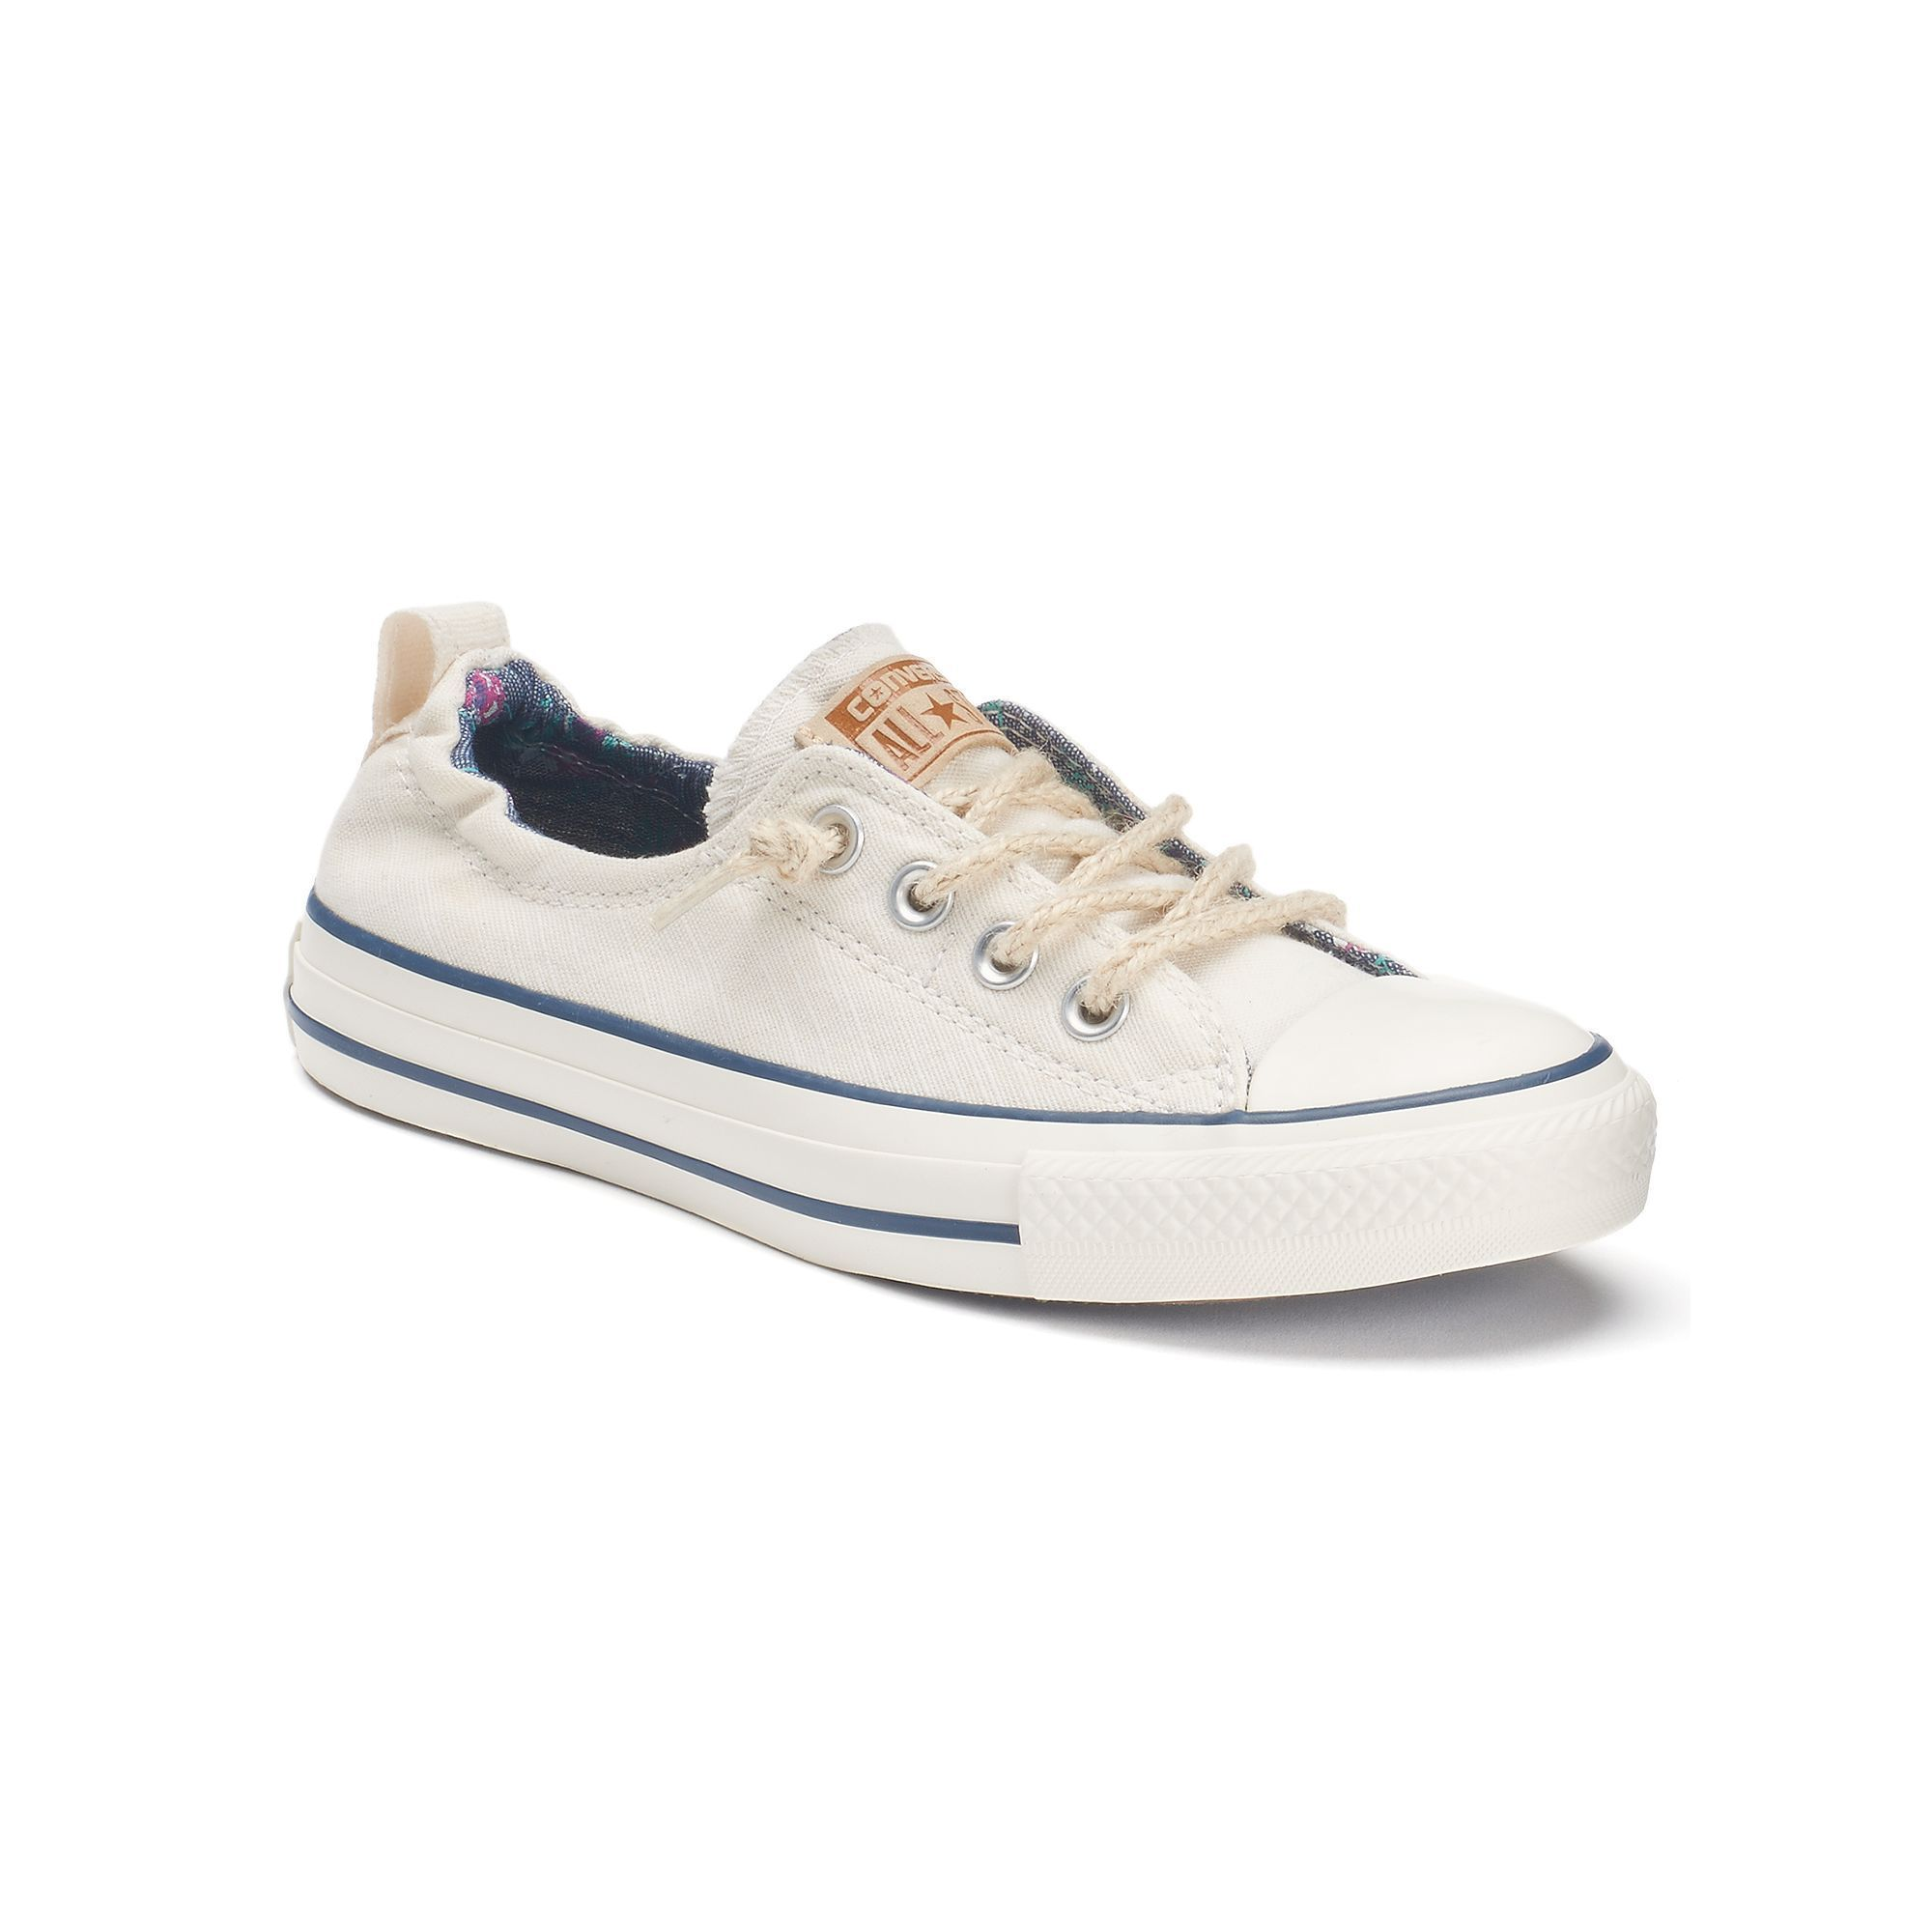 1b2497626952 Women s Converse Chuck Taylor All Star Shoreline Slip Rope Sneakers ...